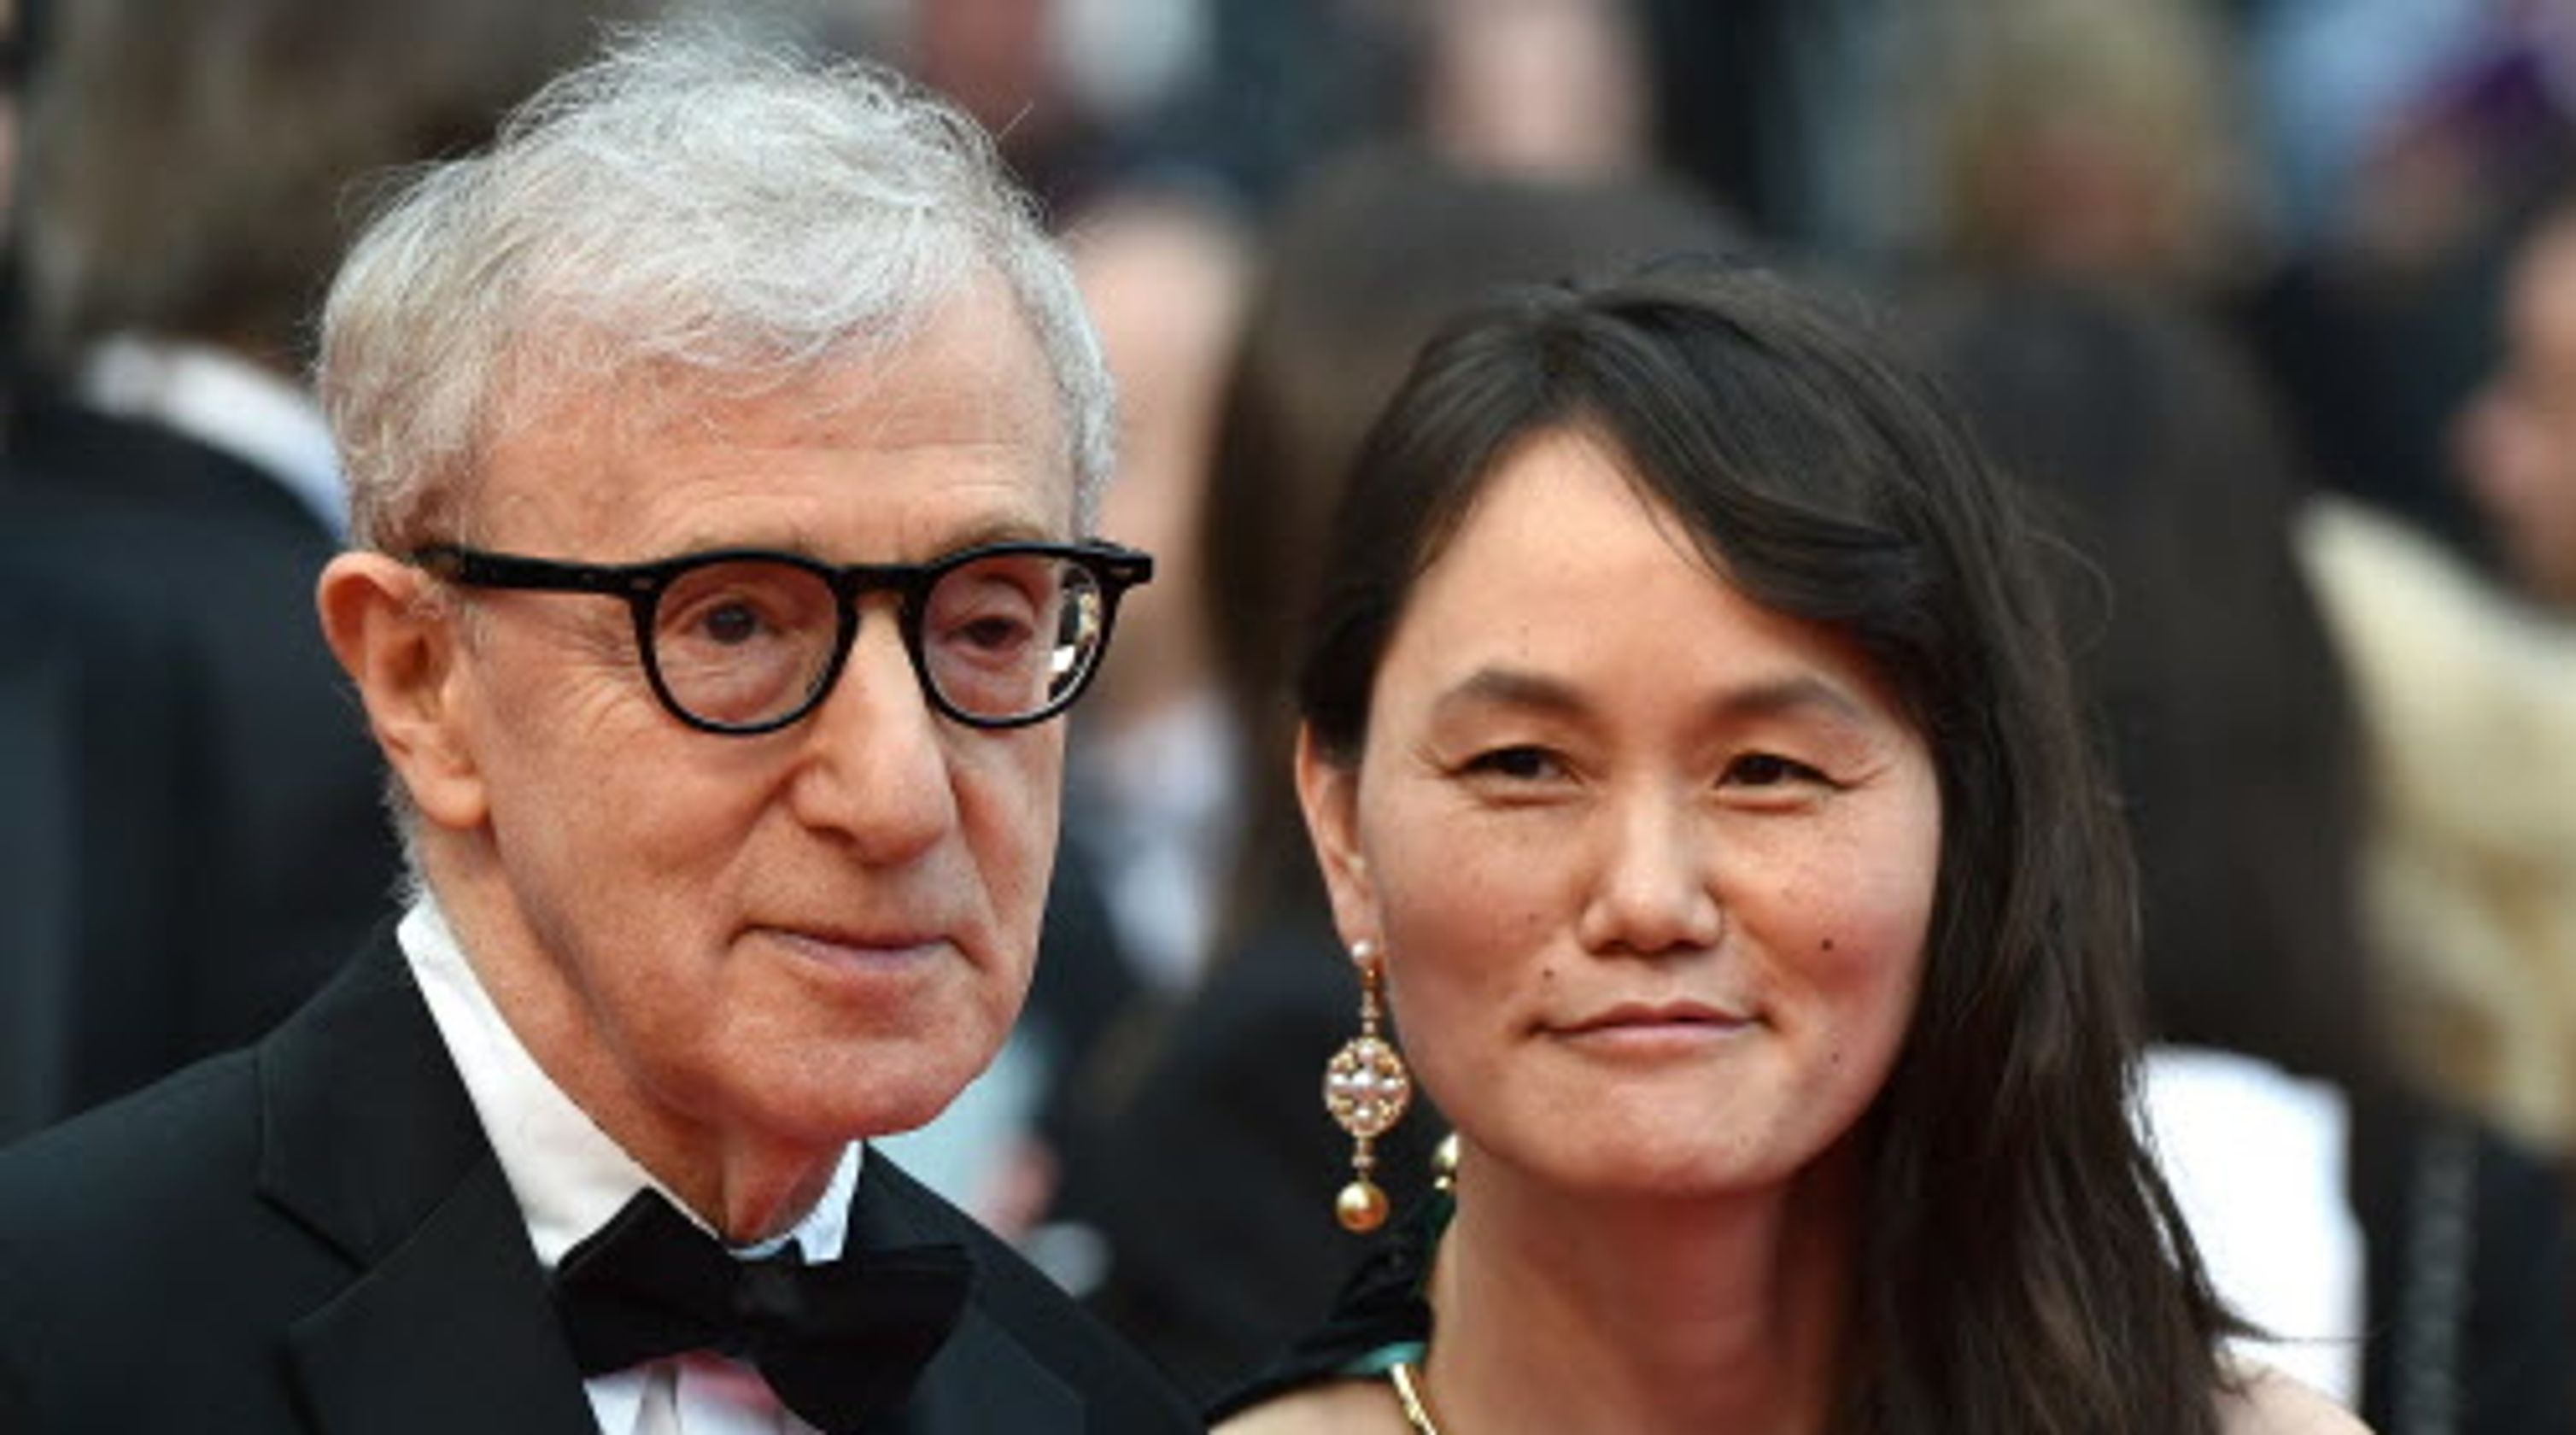 Soon-Yi Previn speaks out about claims against Woody Allen, abuse by Mia Farrow and #MeToo